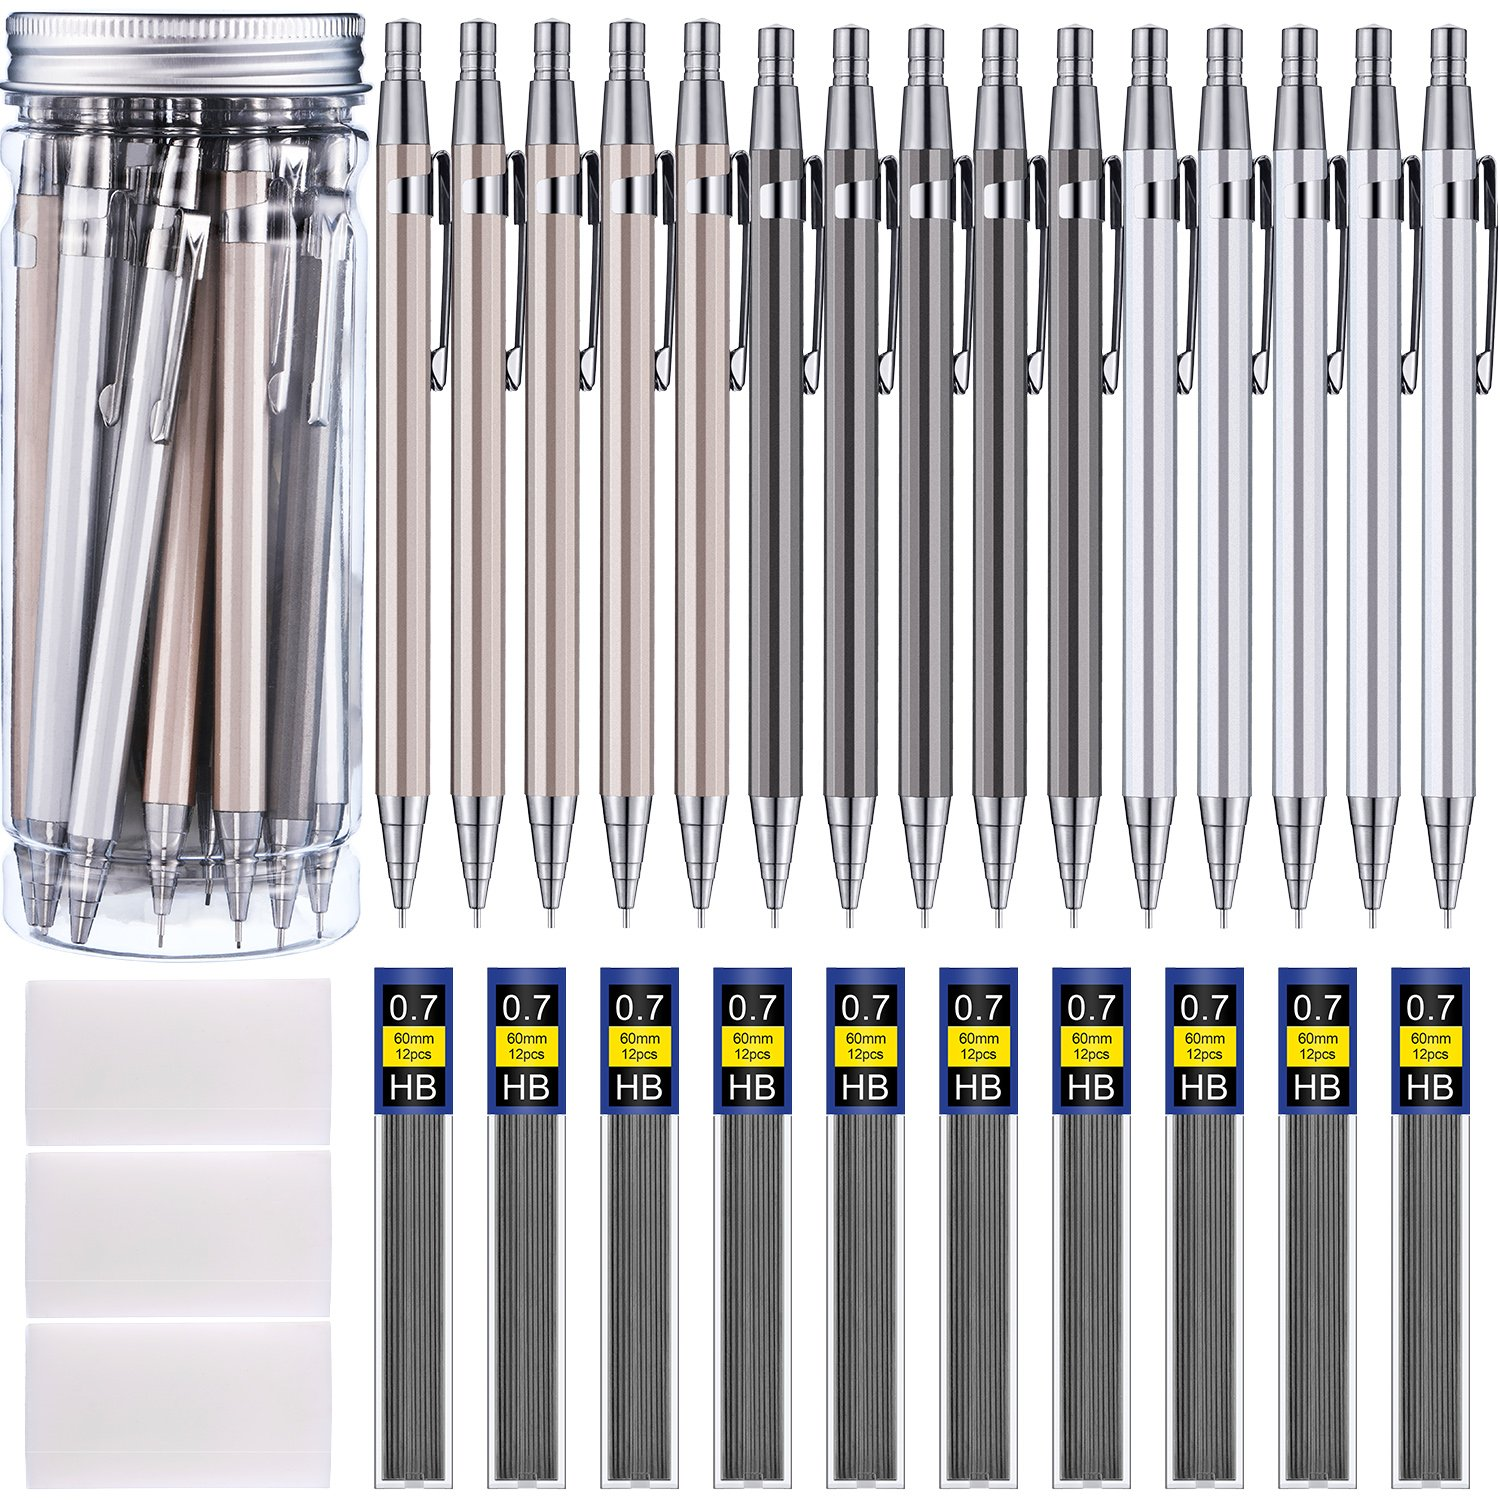 Boao 15 Pieces Metal Mechanical Pencils, 10 Tubes of Lead Refills and 3 Pieces Erasers with Clear Plastic Bottle, 0.7 mm (color set 1 0.7 mm) by Boao